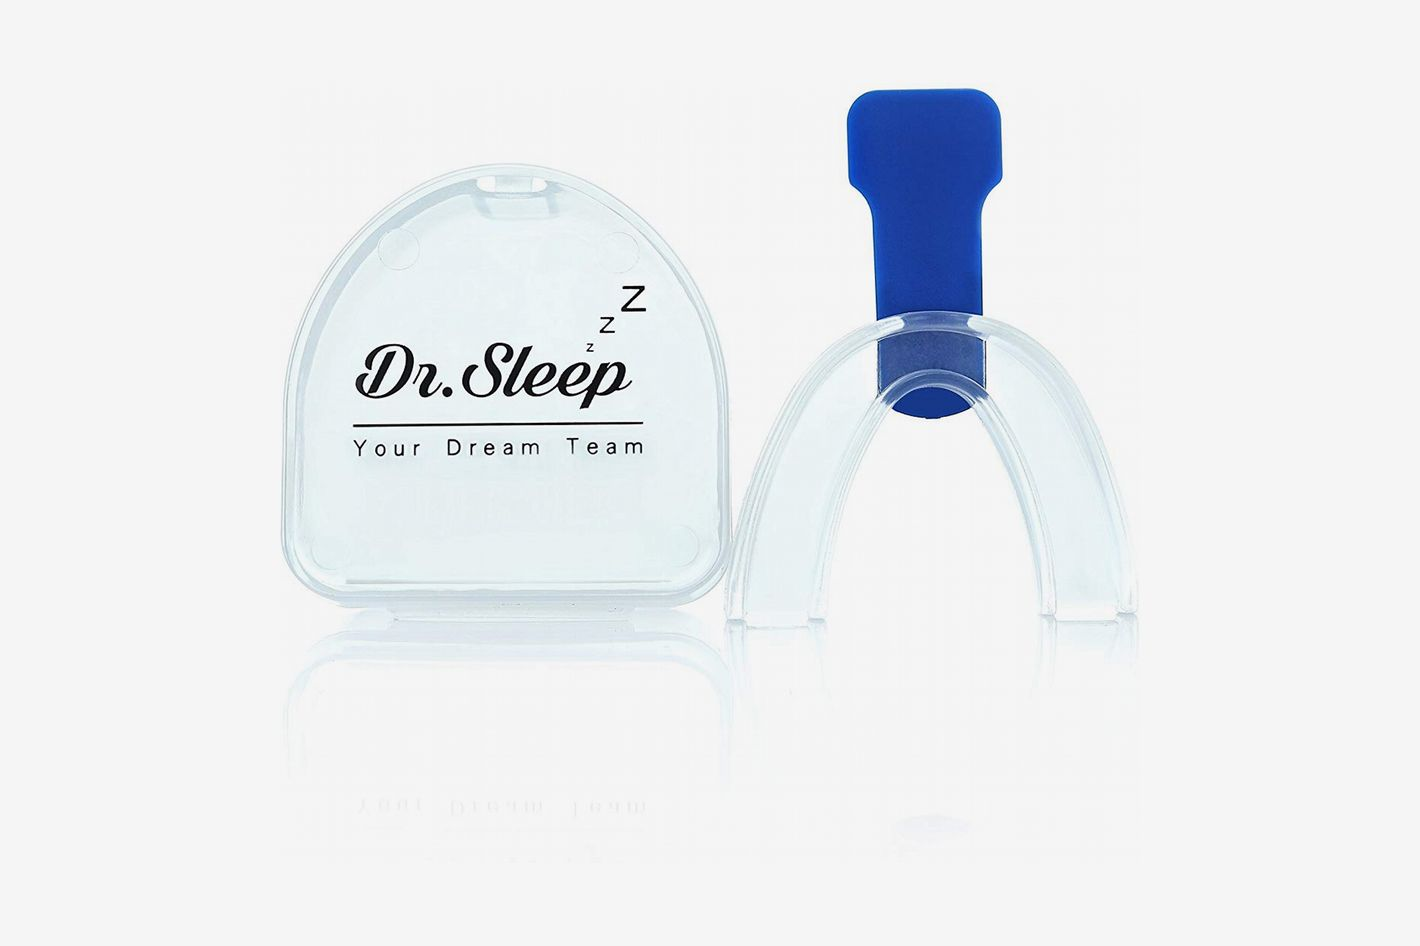 Dr. Sleep Snore Stopper Mouthpiece